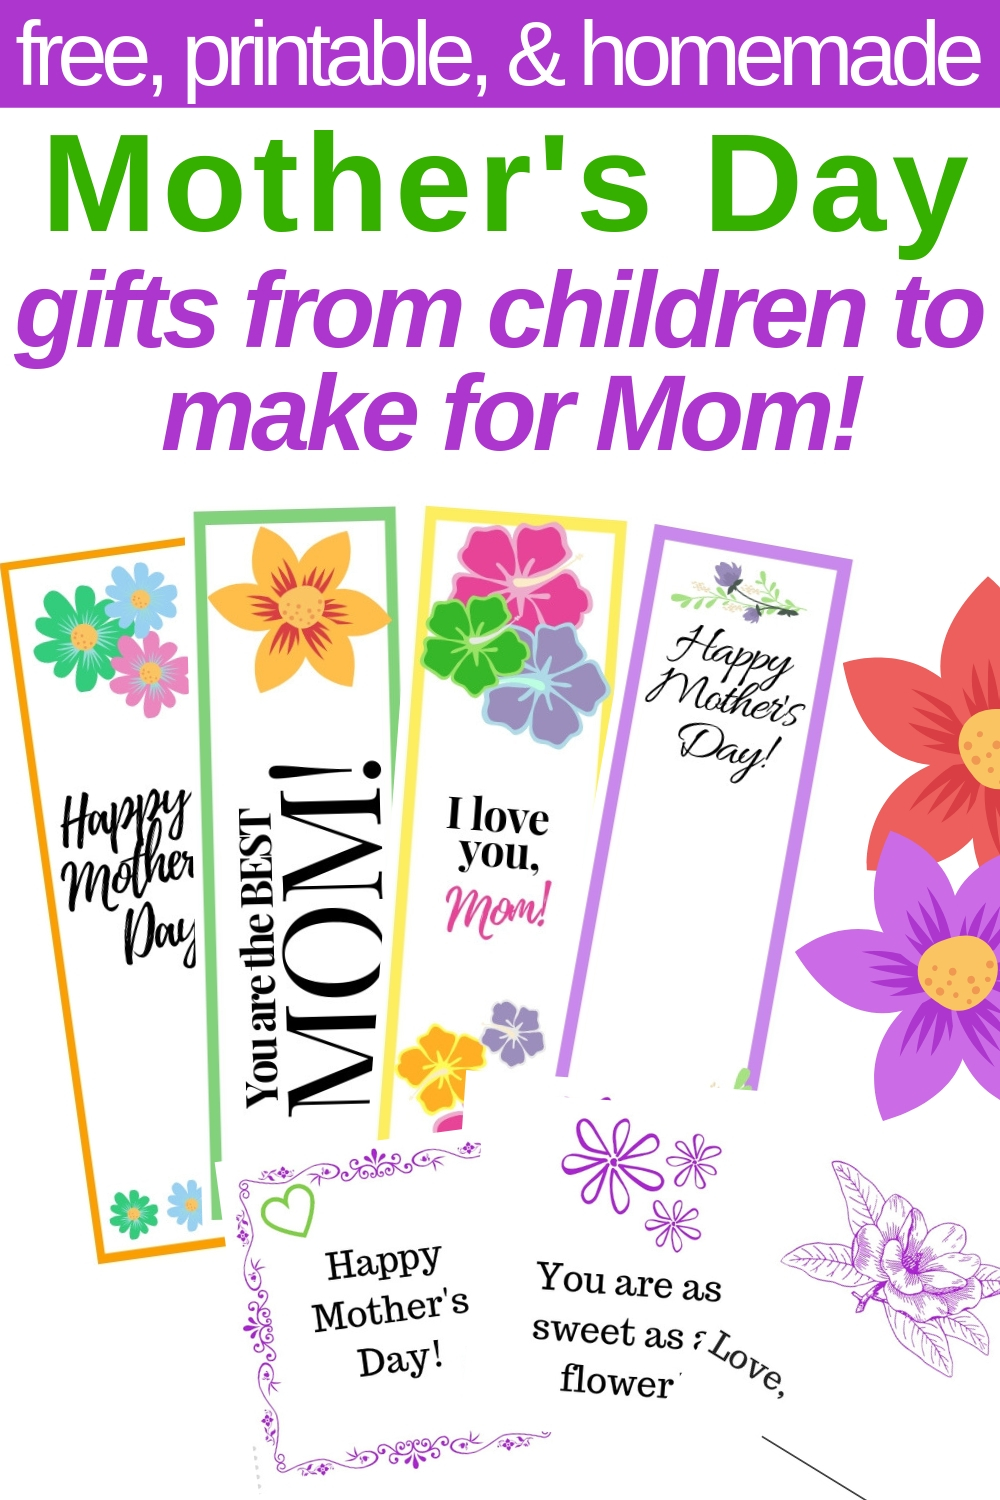 graphic regarding Mother's Day Bookmarks Printable Free identify The Suitable Handmade Moms Working day Present in opposition to Little ones for Mother